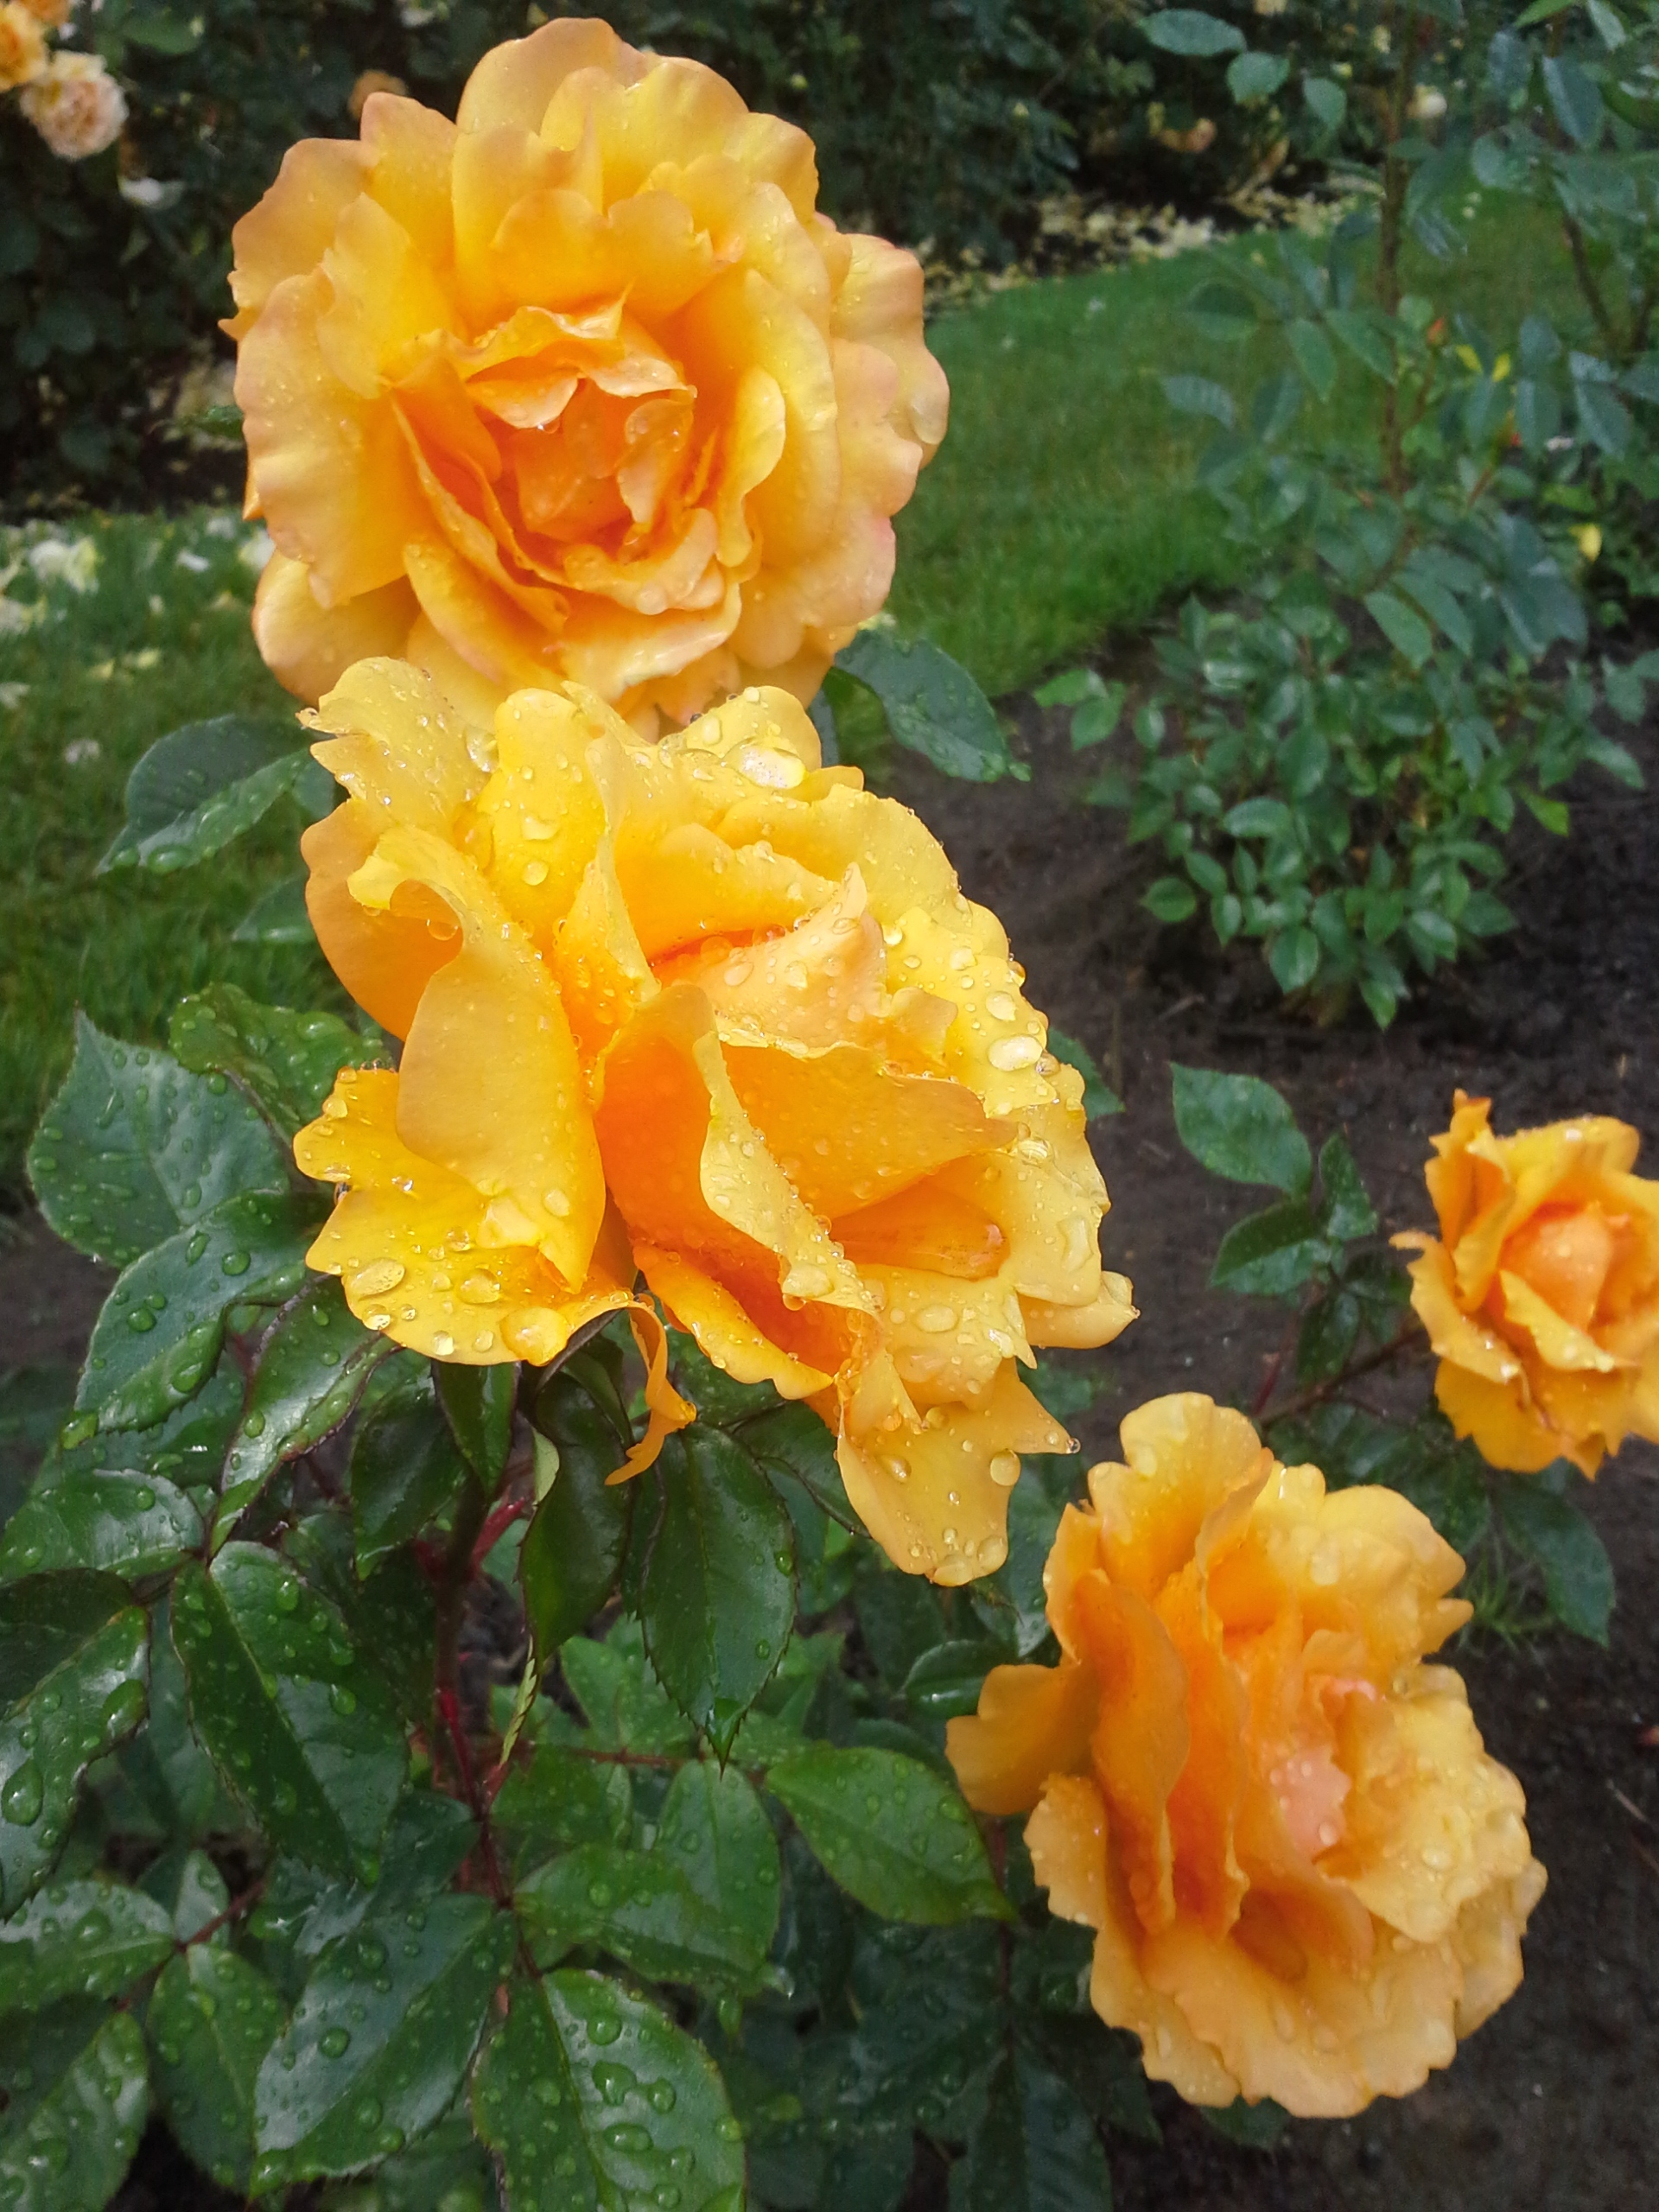 bright yellow roses after rain photo